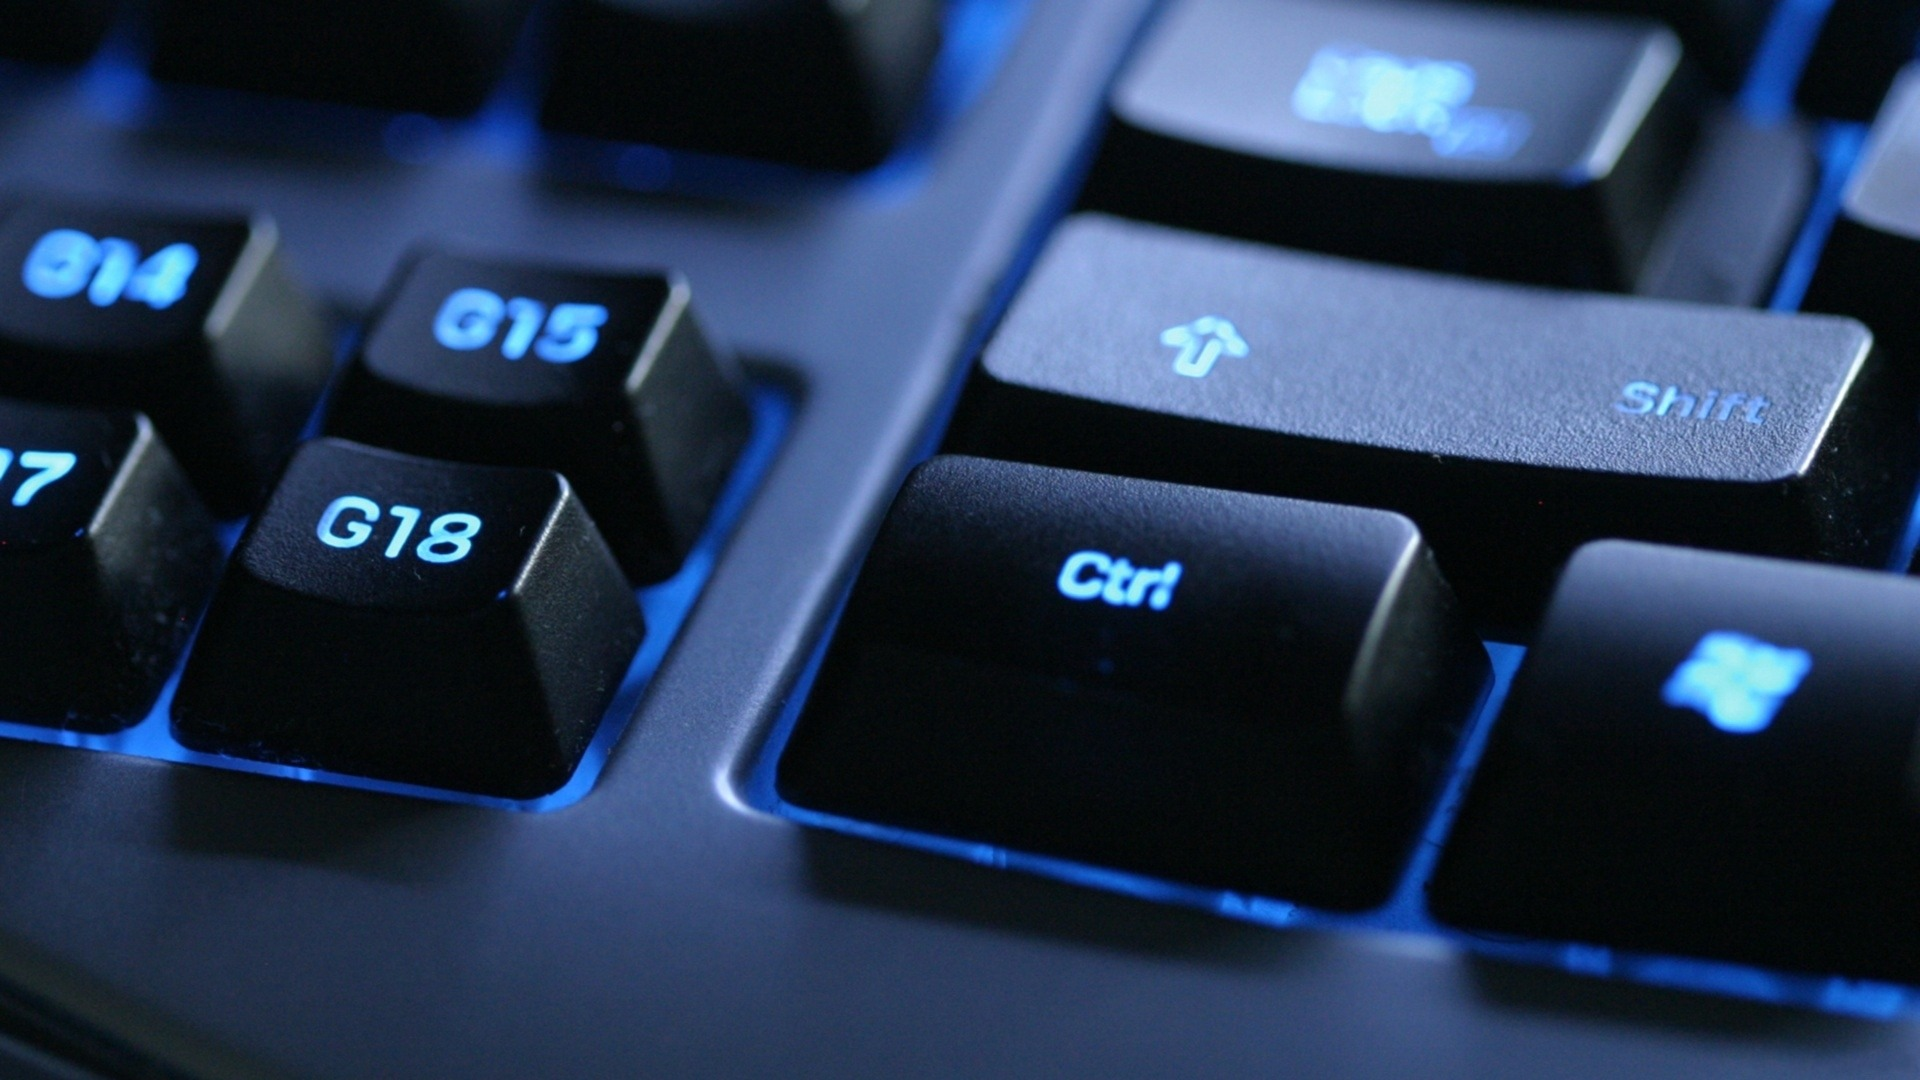 Technology Keyboard Macro Wallpaper Full HD Wallpaper with 1920x1080 1920x1080